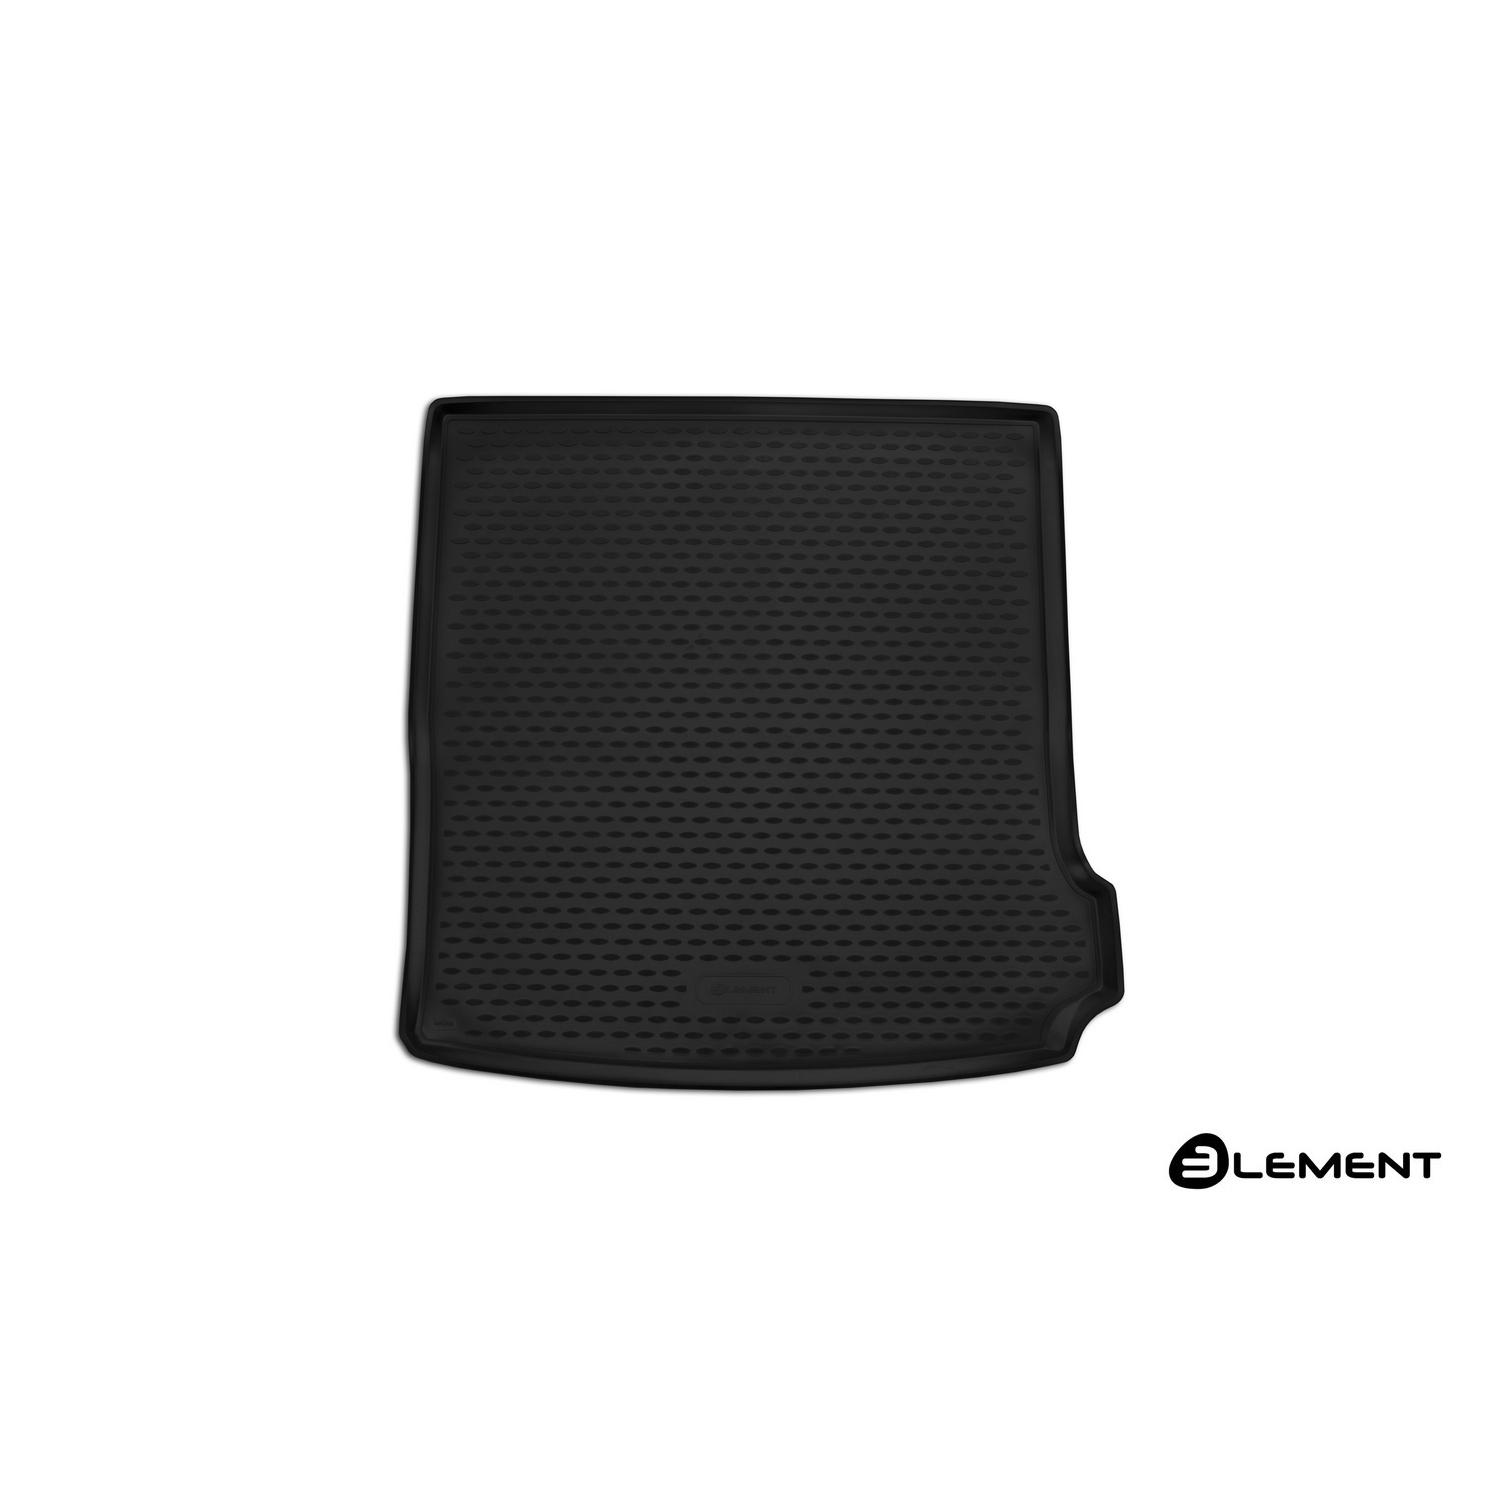 Trunk Mat For VOLVO V90, 2016, Station Wagon, (Europe), 1 PCs ELEMENT5016B12